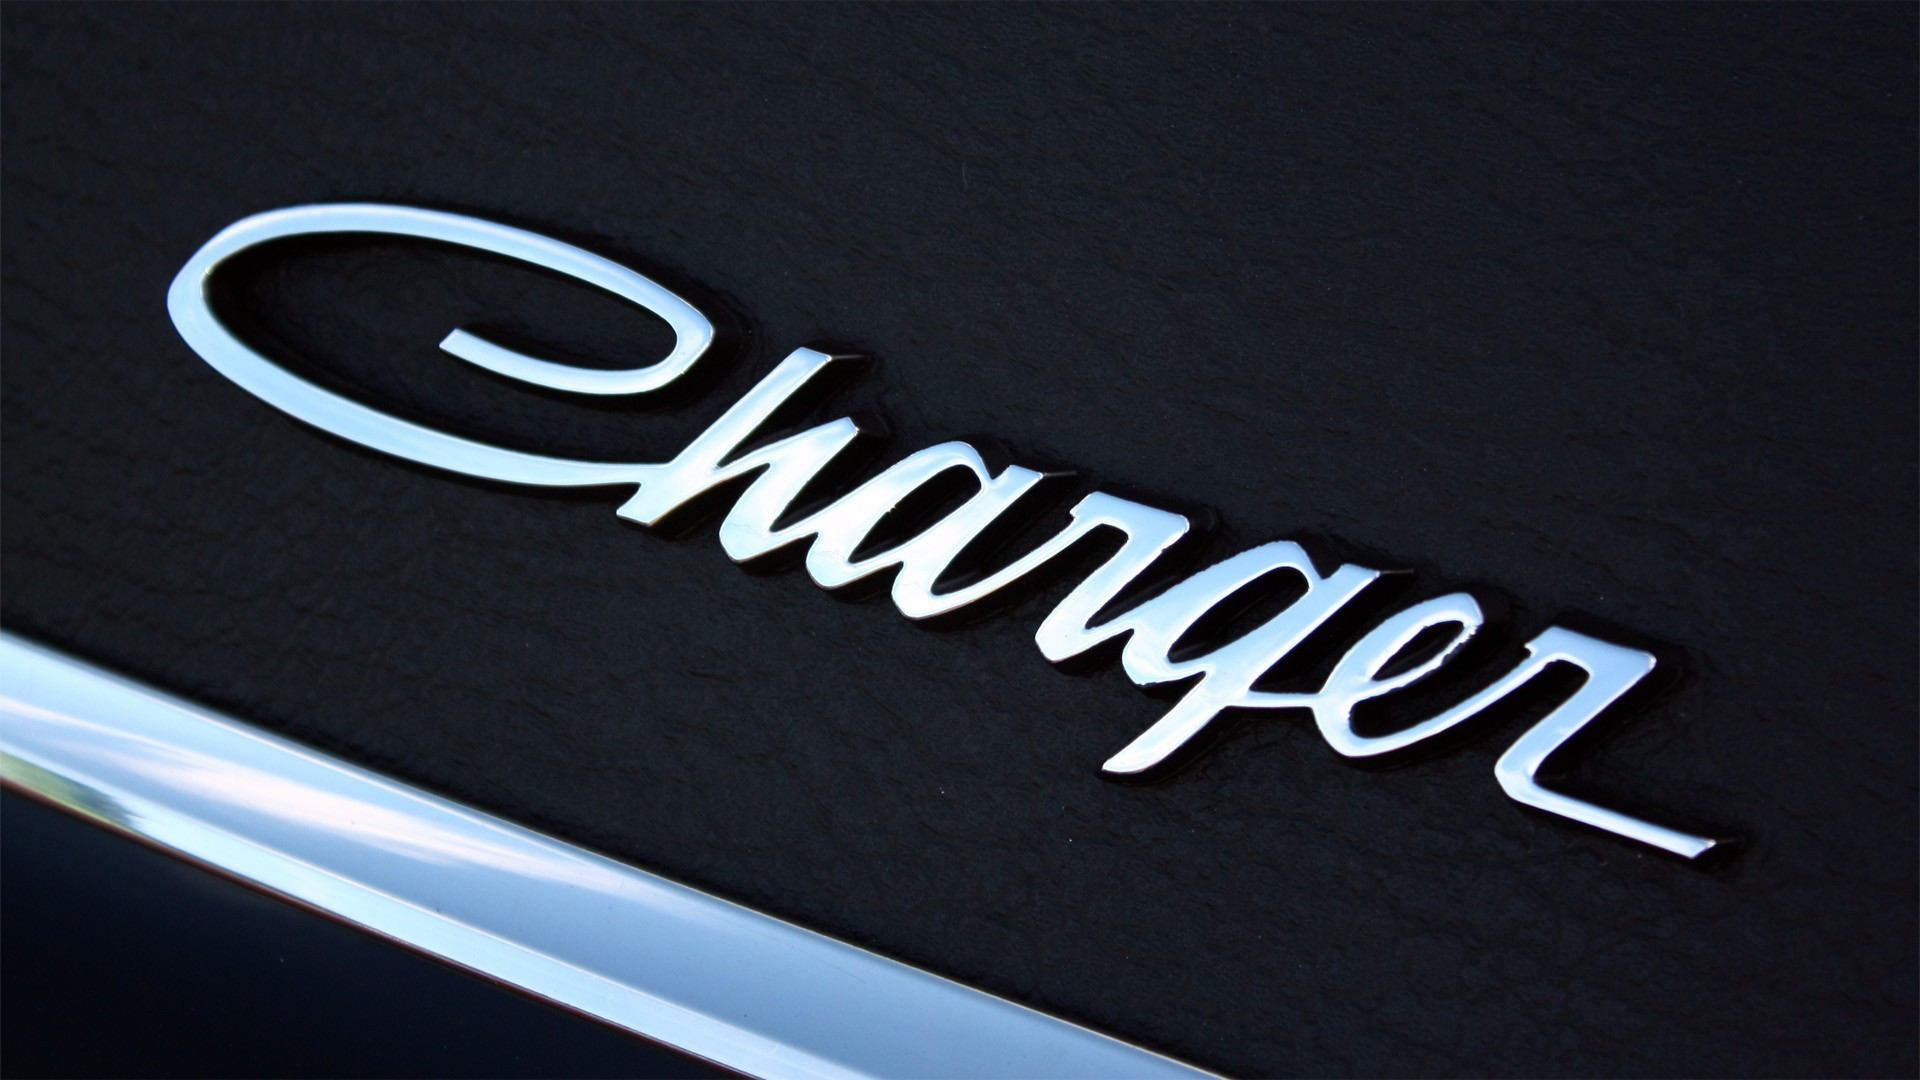 American Muscle Car Mobile Wallpaper Hd Dodge Charger Logo Hd Logo 4k Wallpapers Images